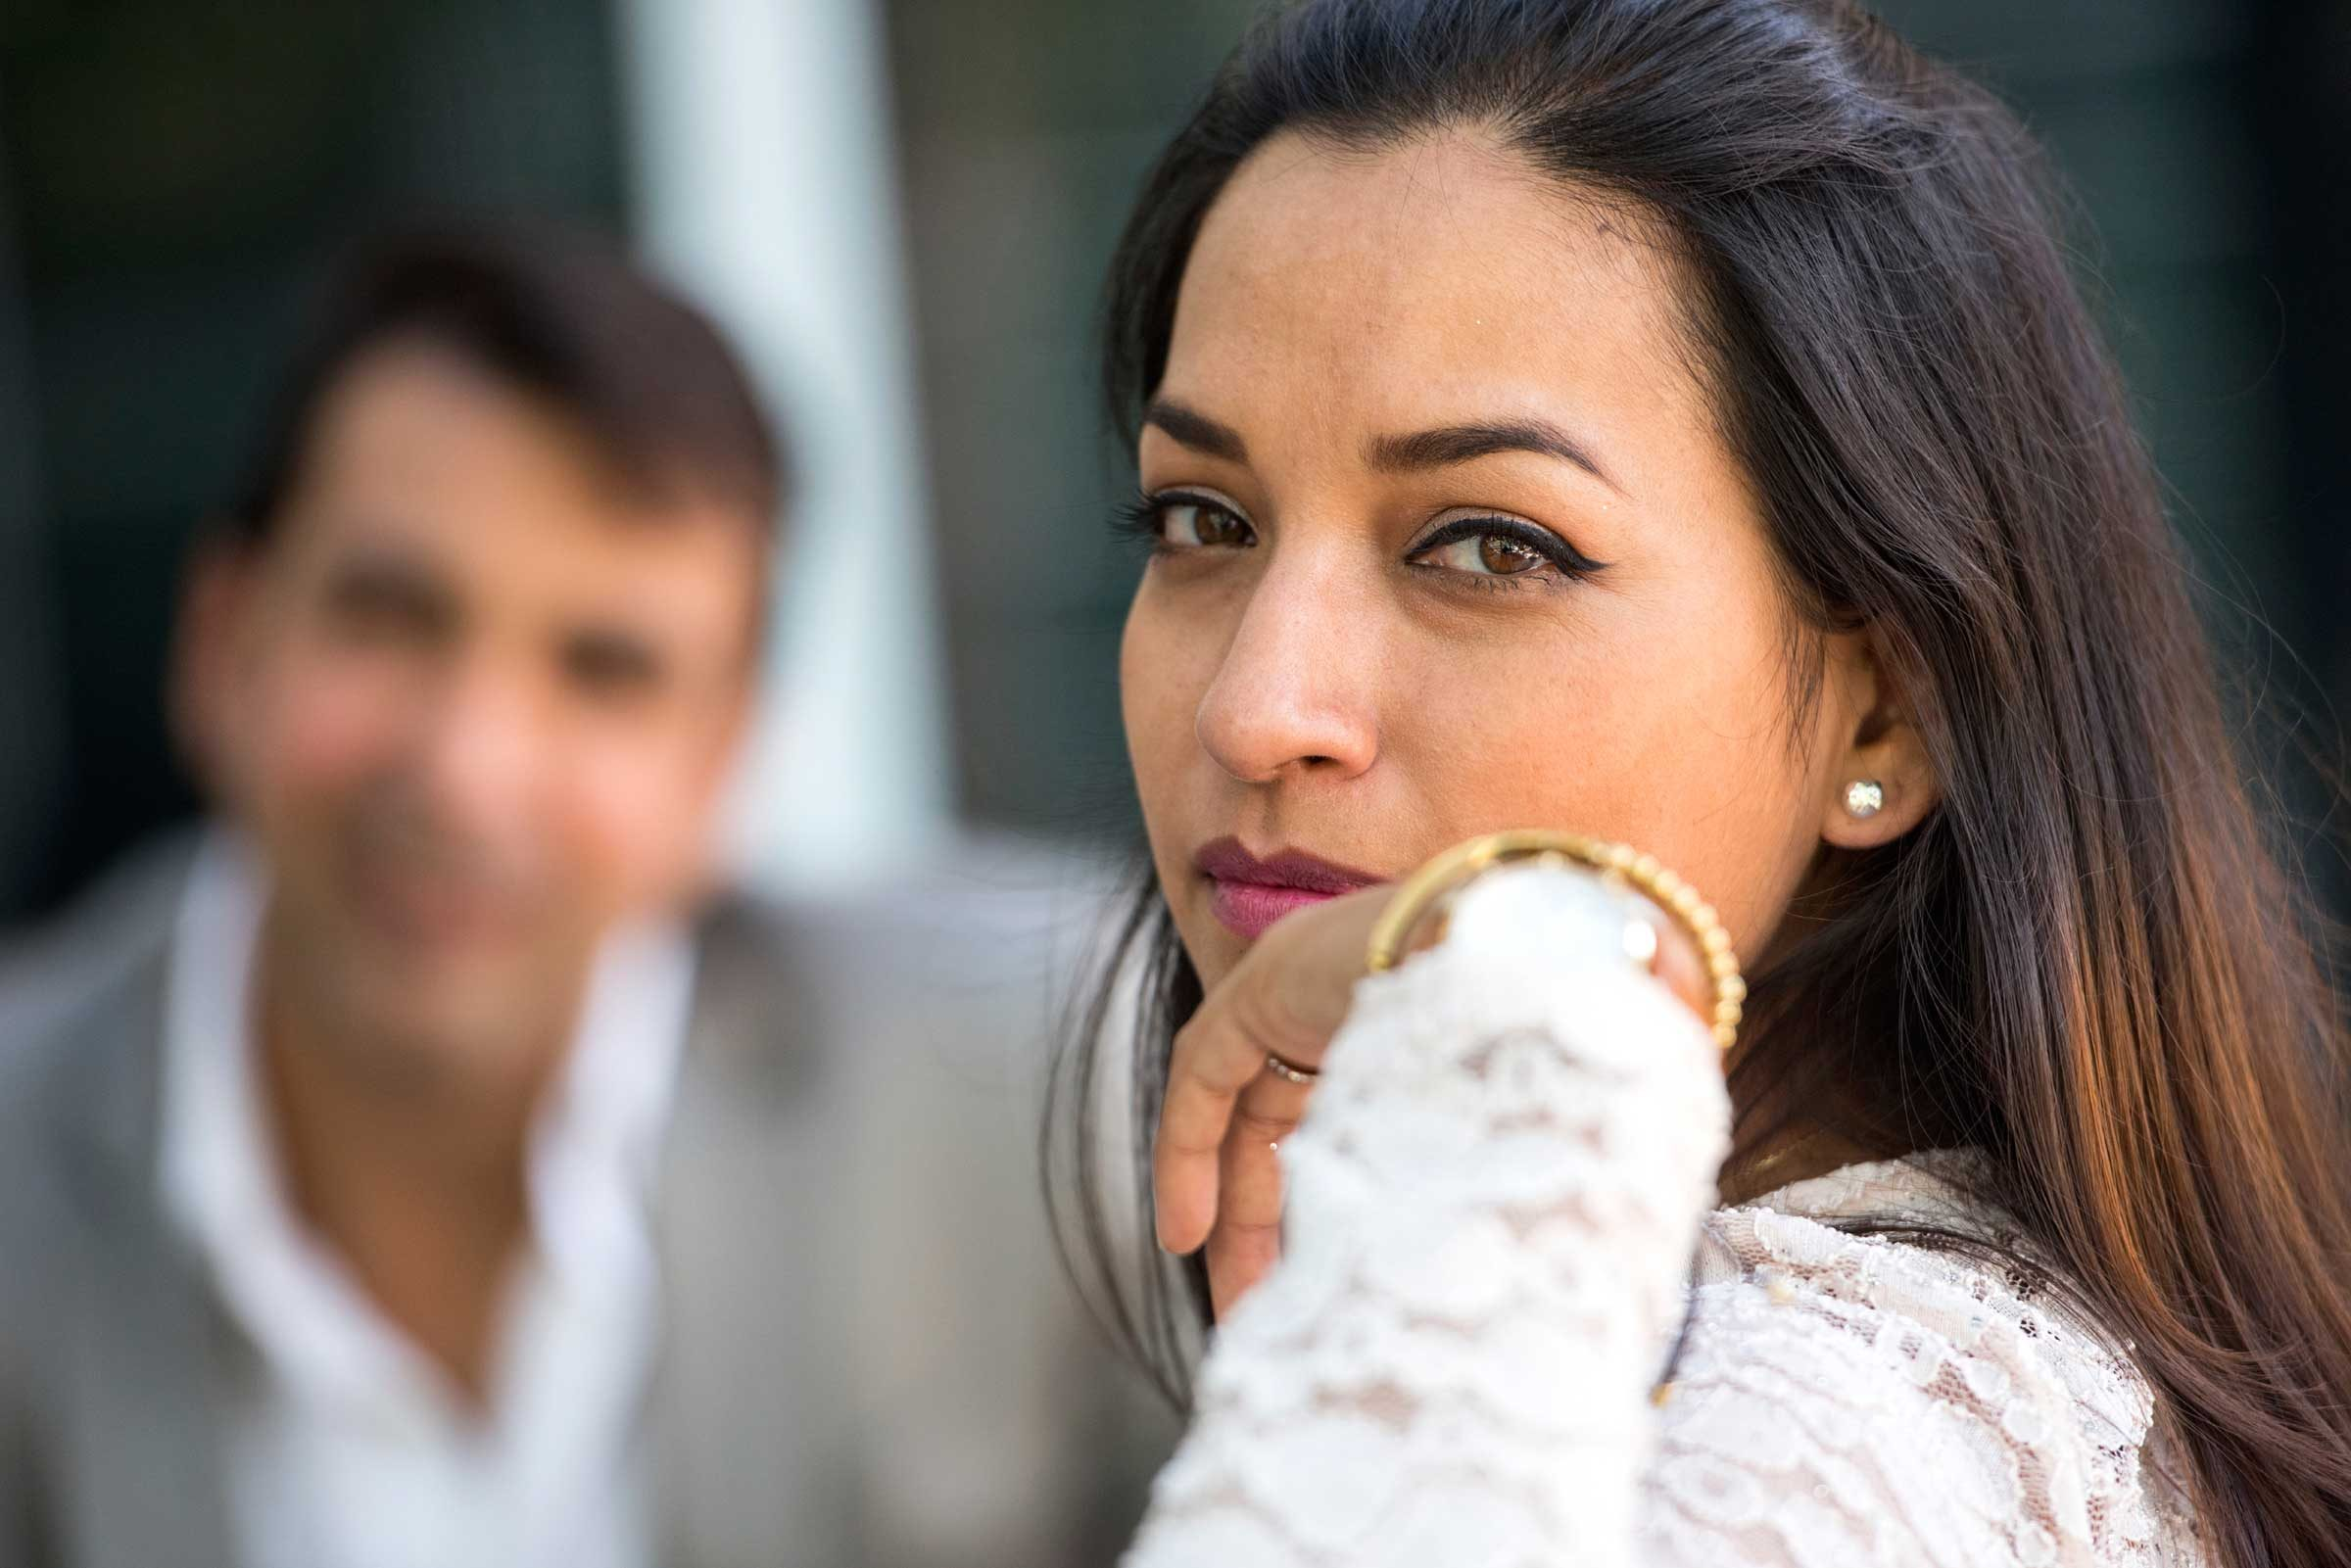 Signs Of Divorce Is Your Marriage In Trouble